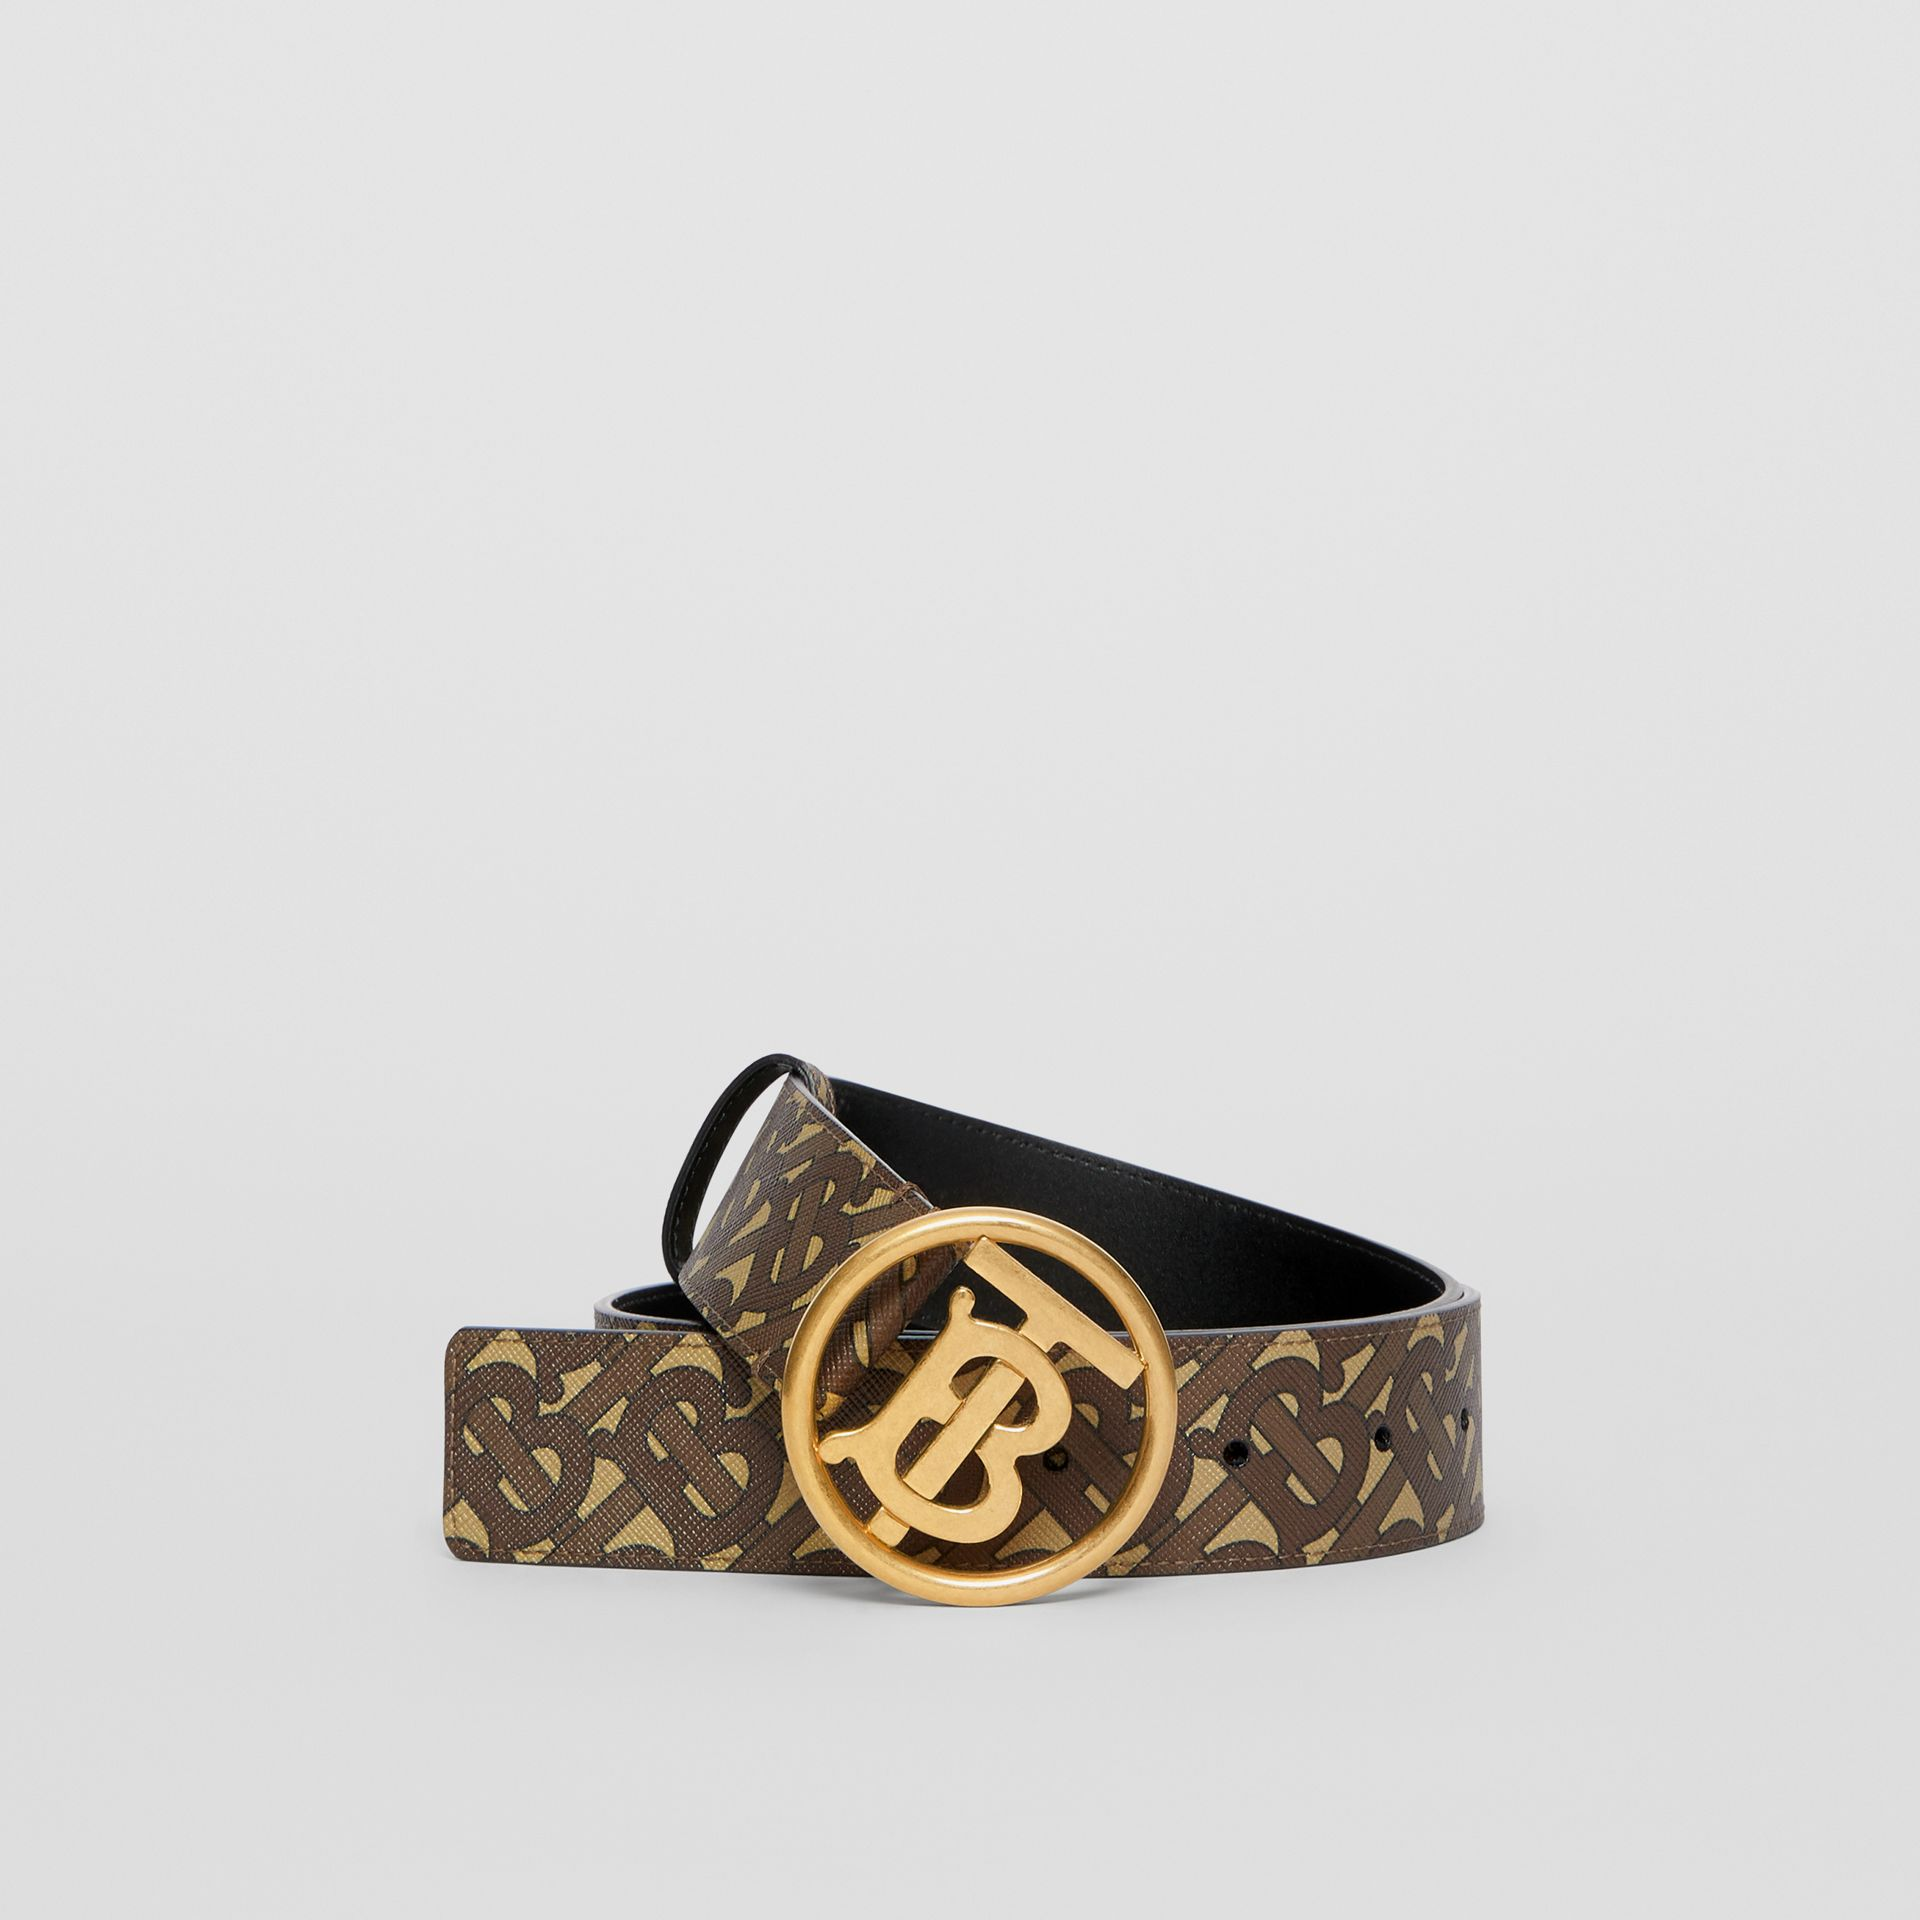 Monogram Motif Monogram Print E-canvas Belt in Bridle Brown - Women | Burberry United Kingdom - gallery image 0